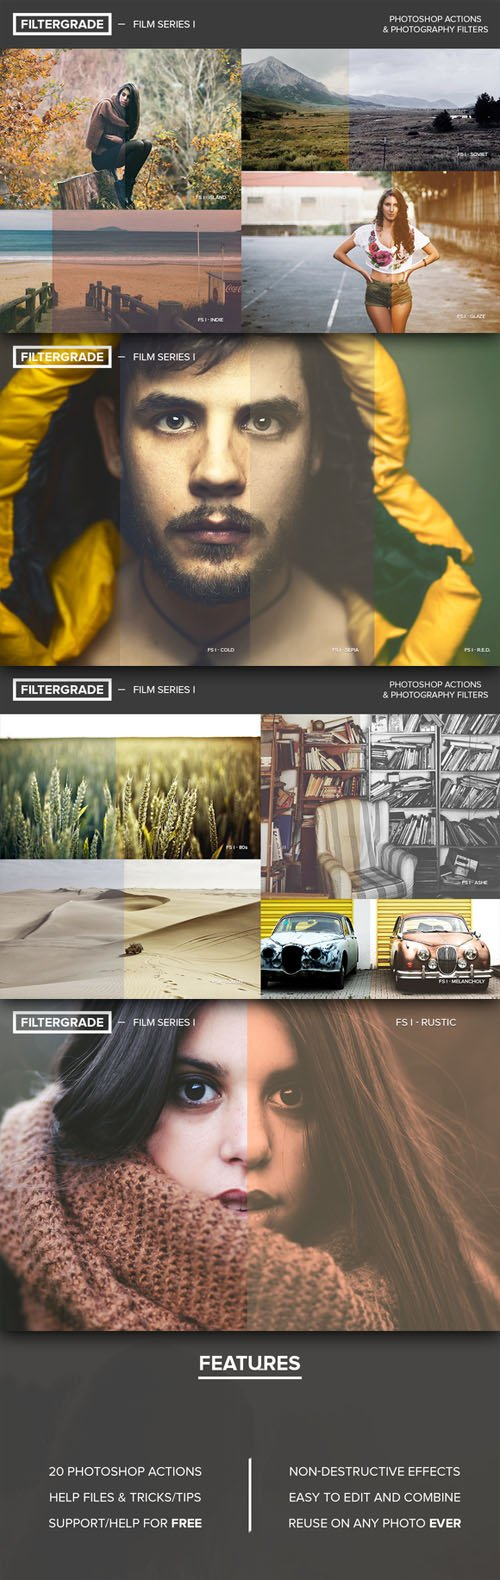 FilterGrade Film Series I - Creativemarket 19406